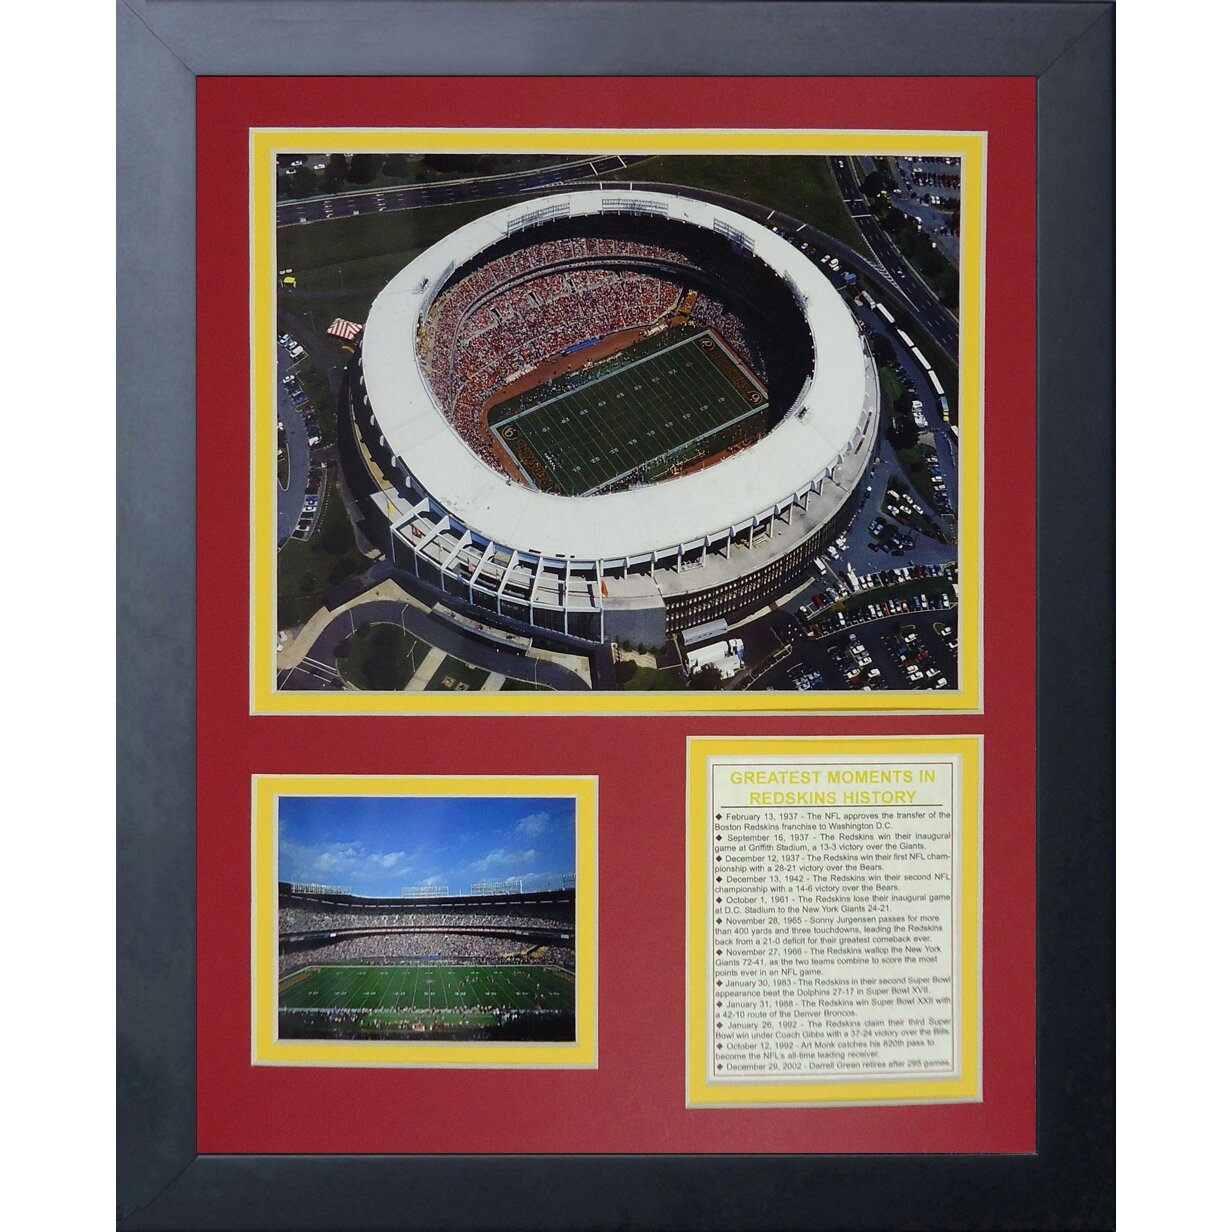 Redskins New Stadium: Washington Redskins RFK Stadium Framed Memorabili